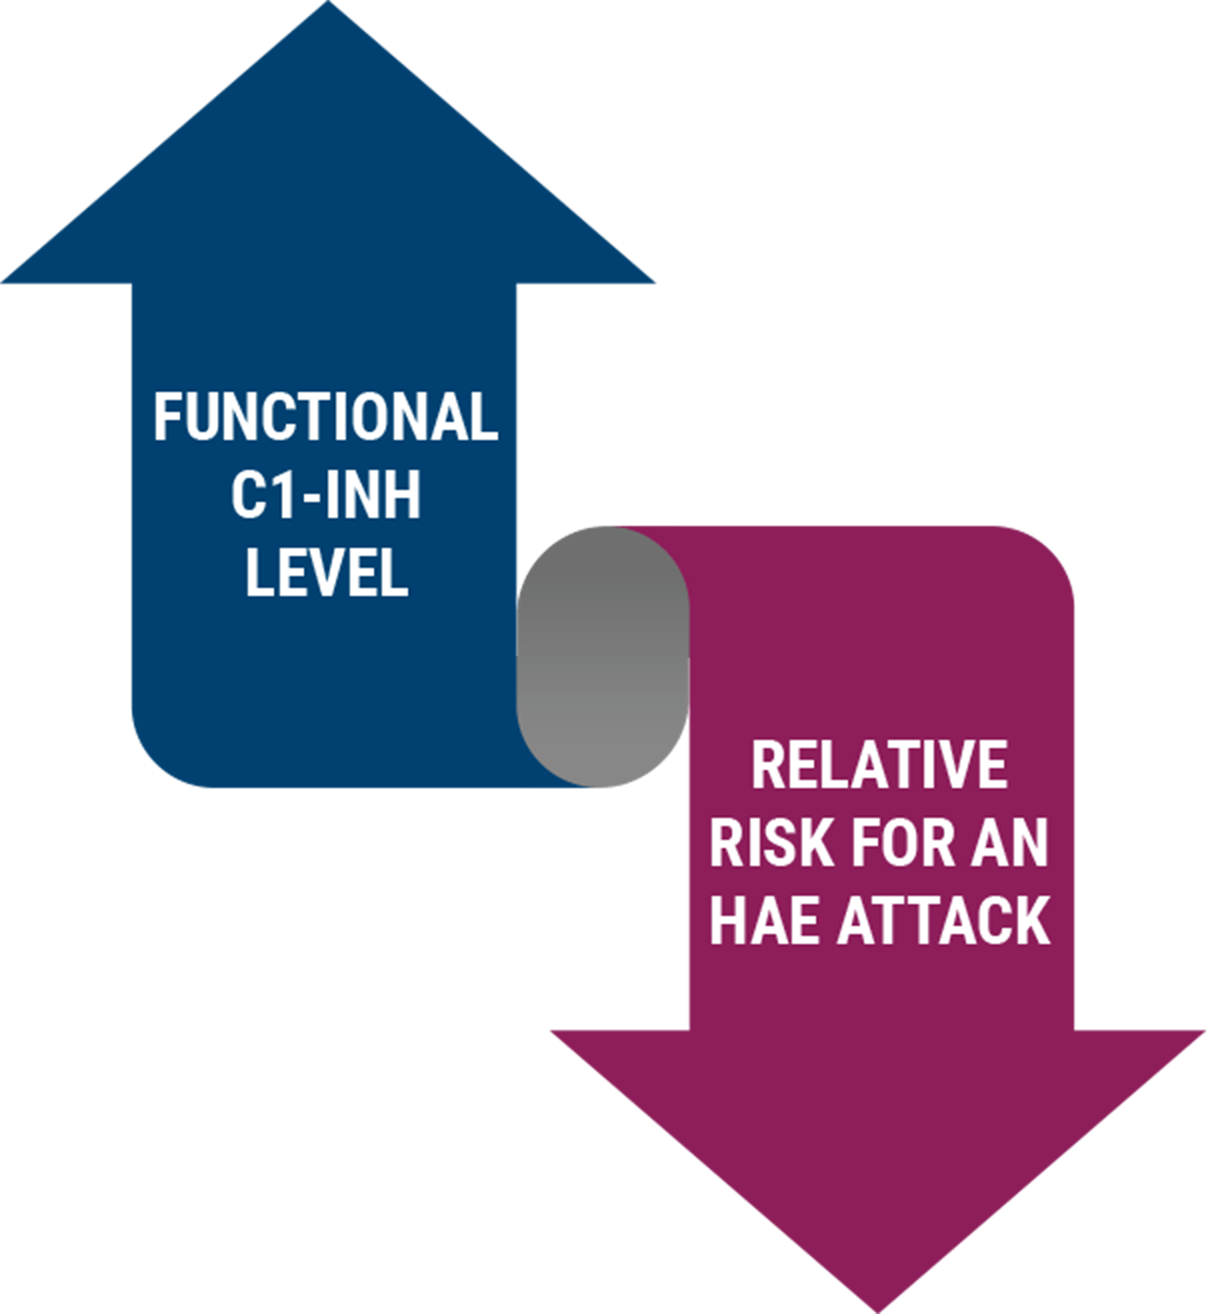 image showing increase c1-ing levels and decreased risk for attacks